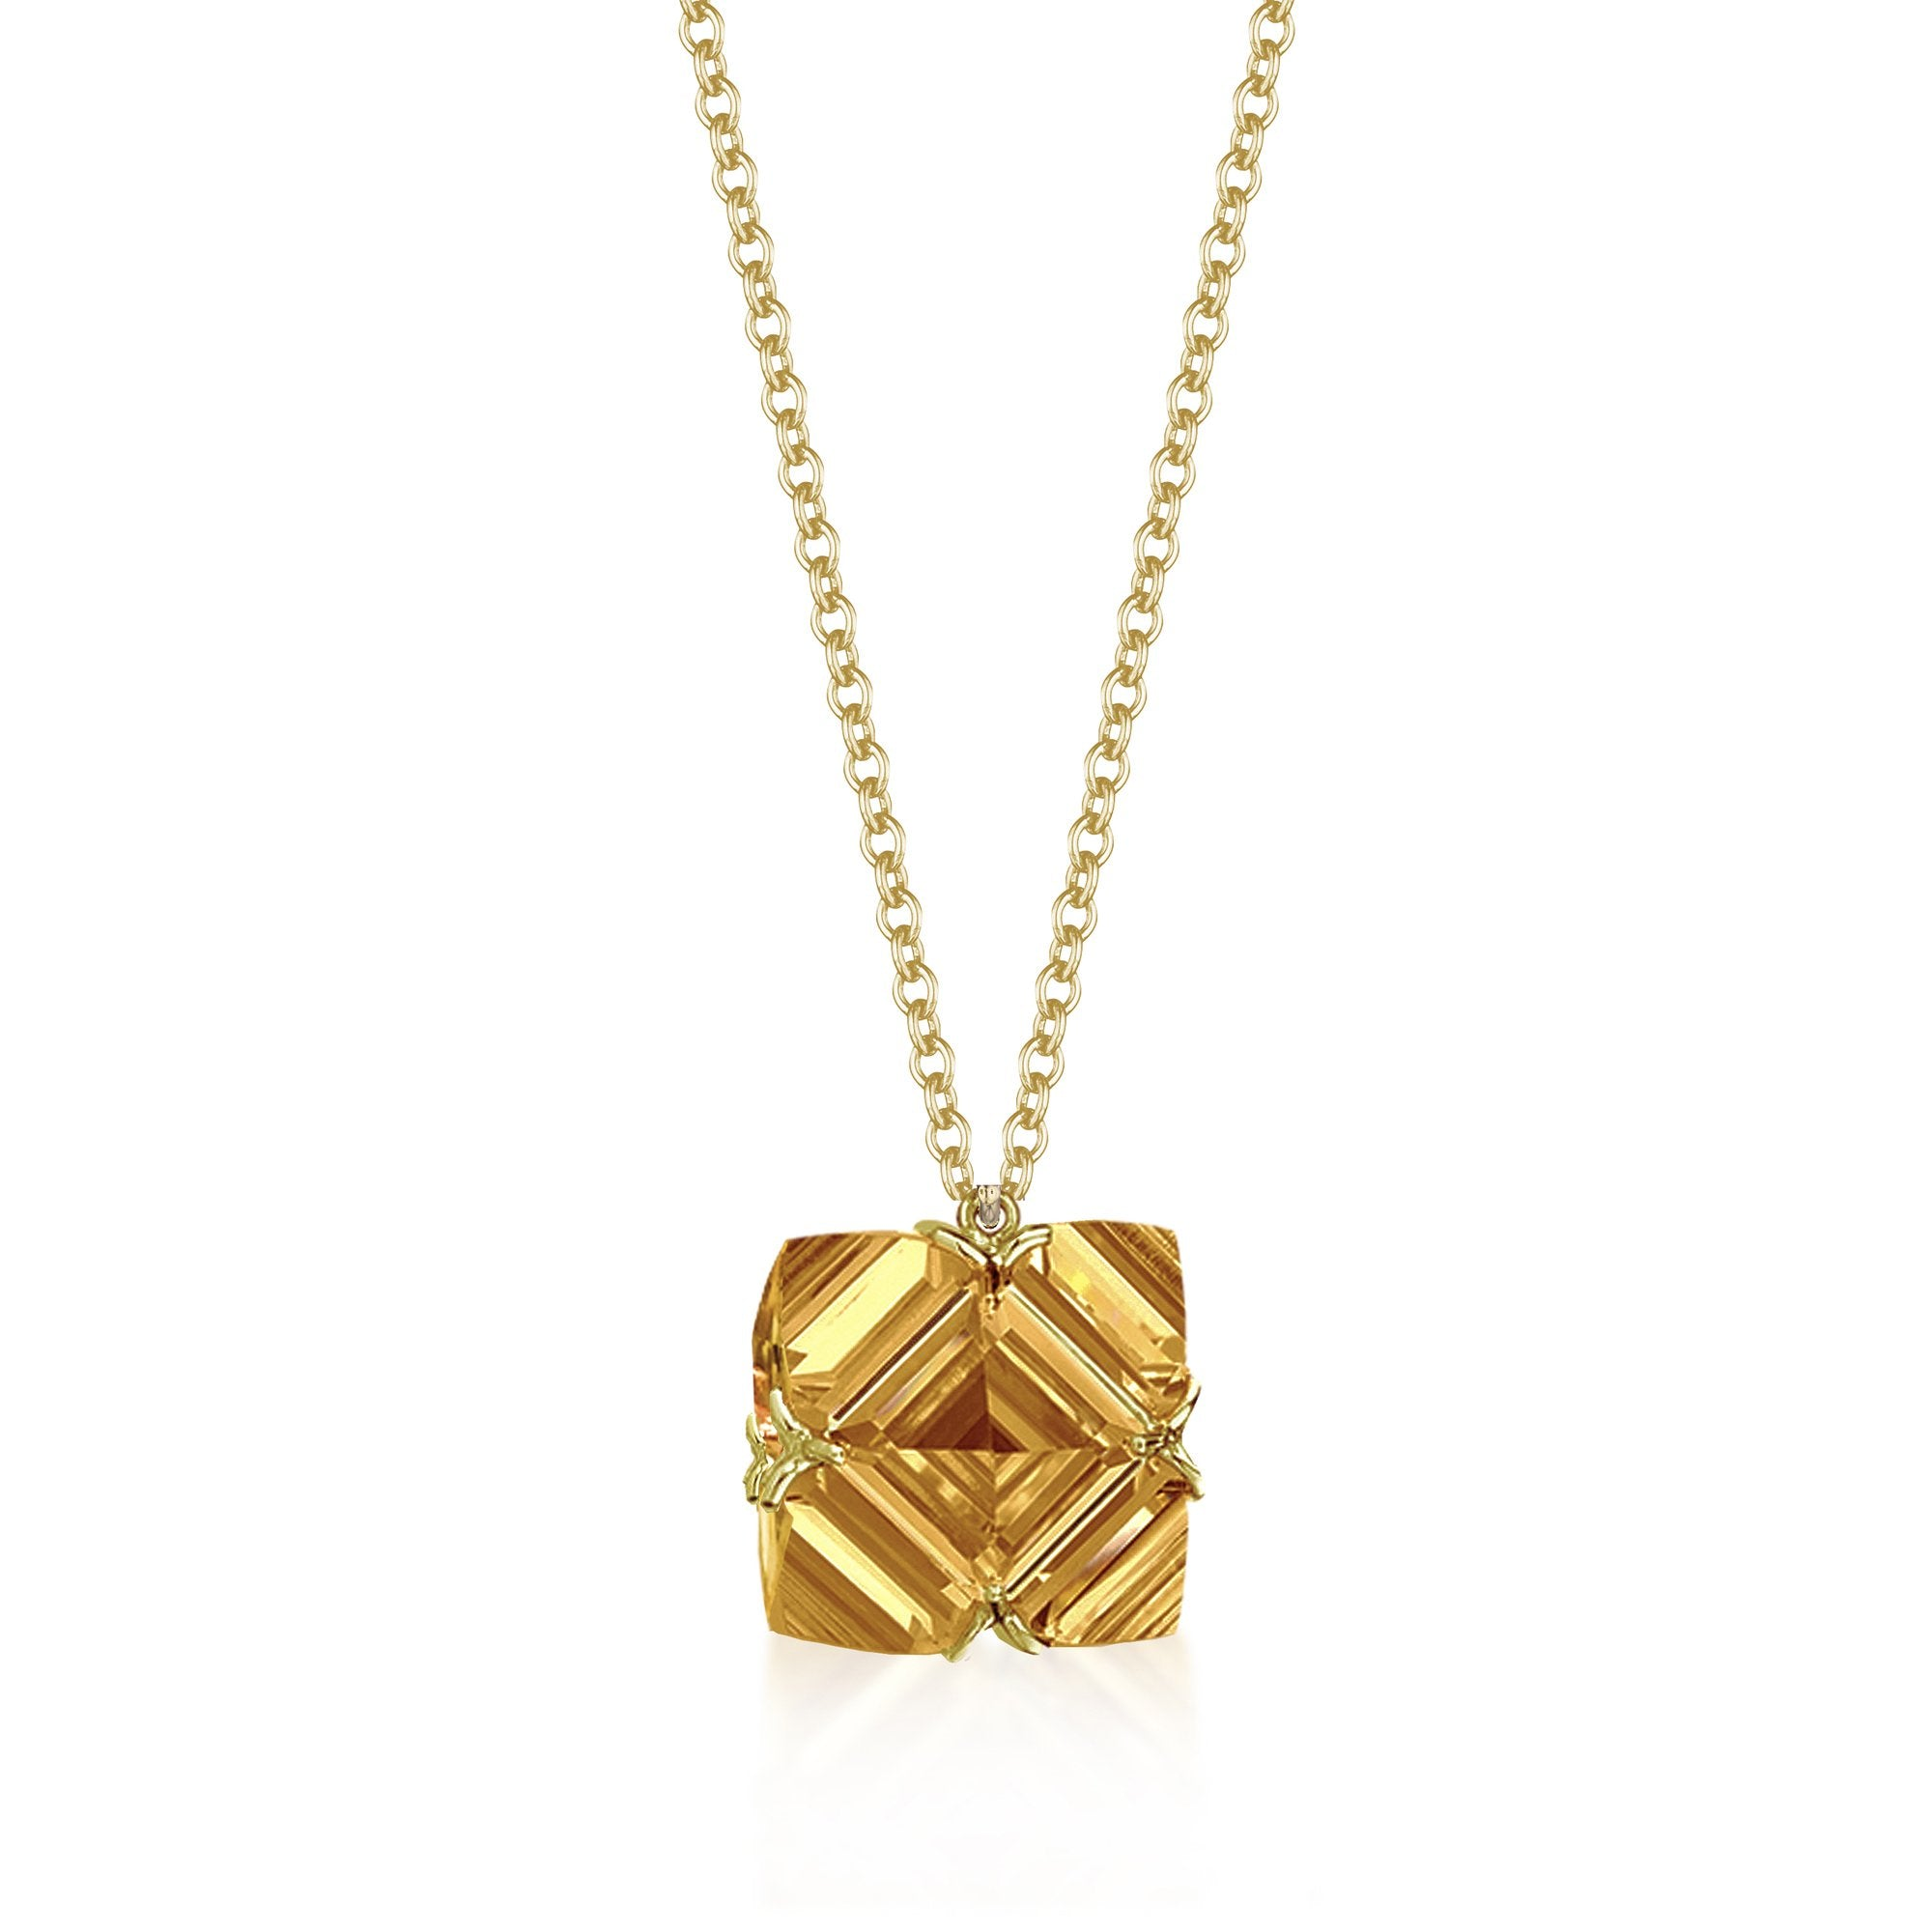 Citrine 'Very PC'® Pendant Necklace, Petite - Paolo Costagli - 1